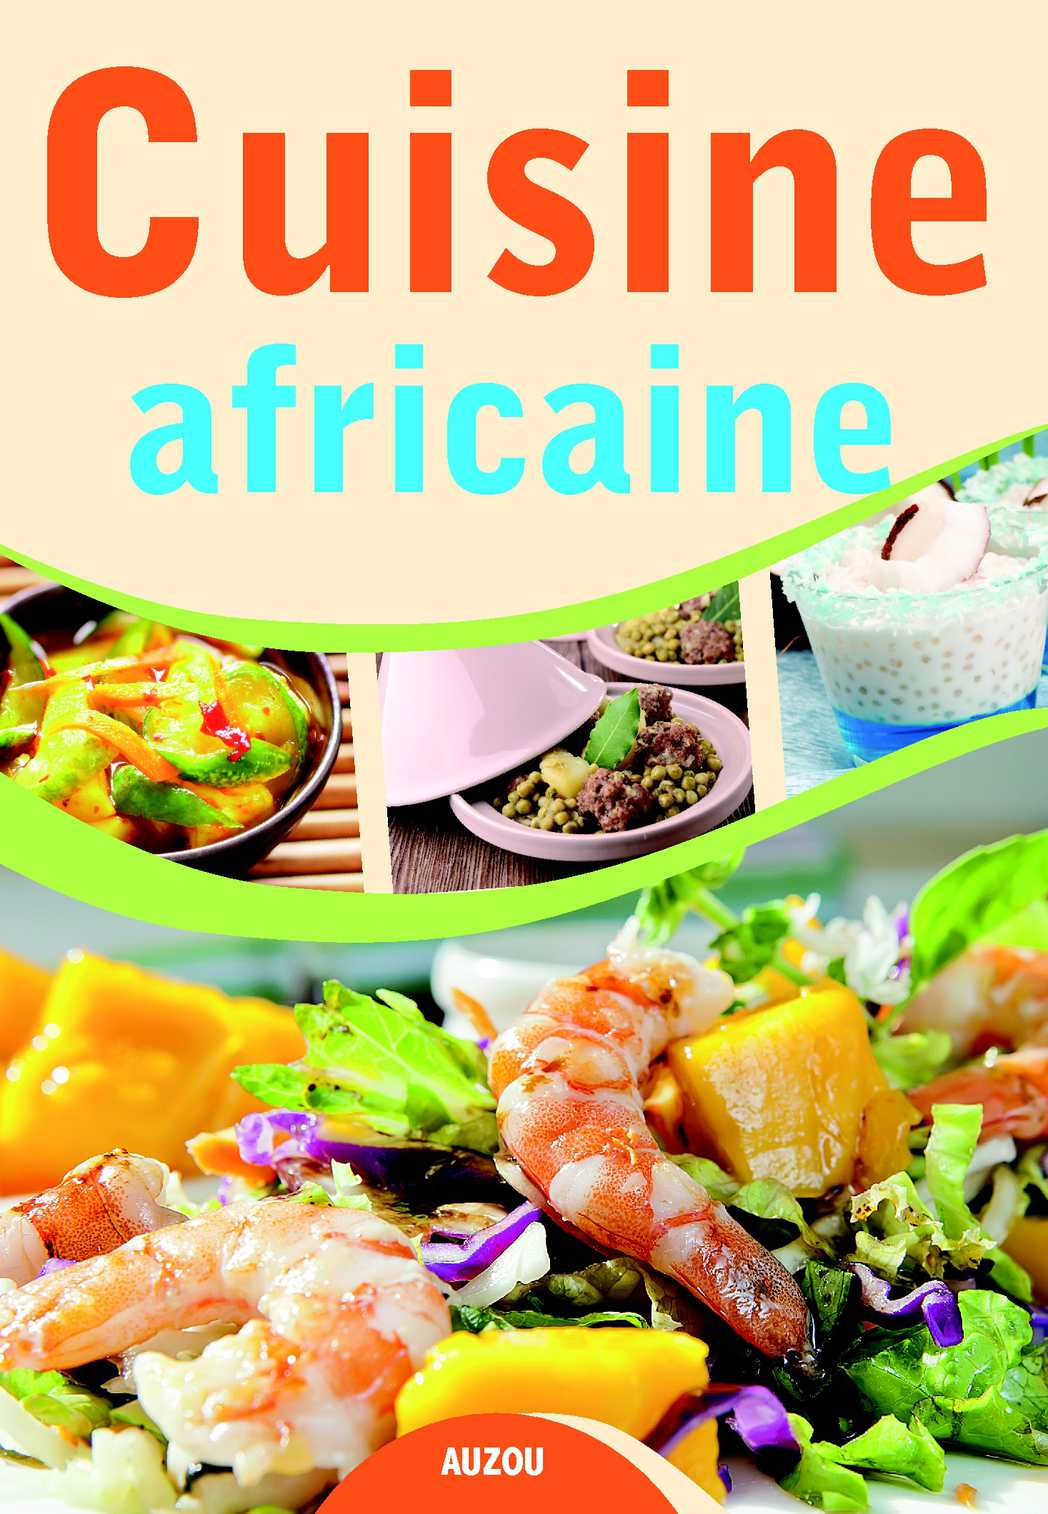 Cuisine Africaine Editions Auzou Calameo Downloader